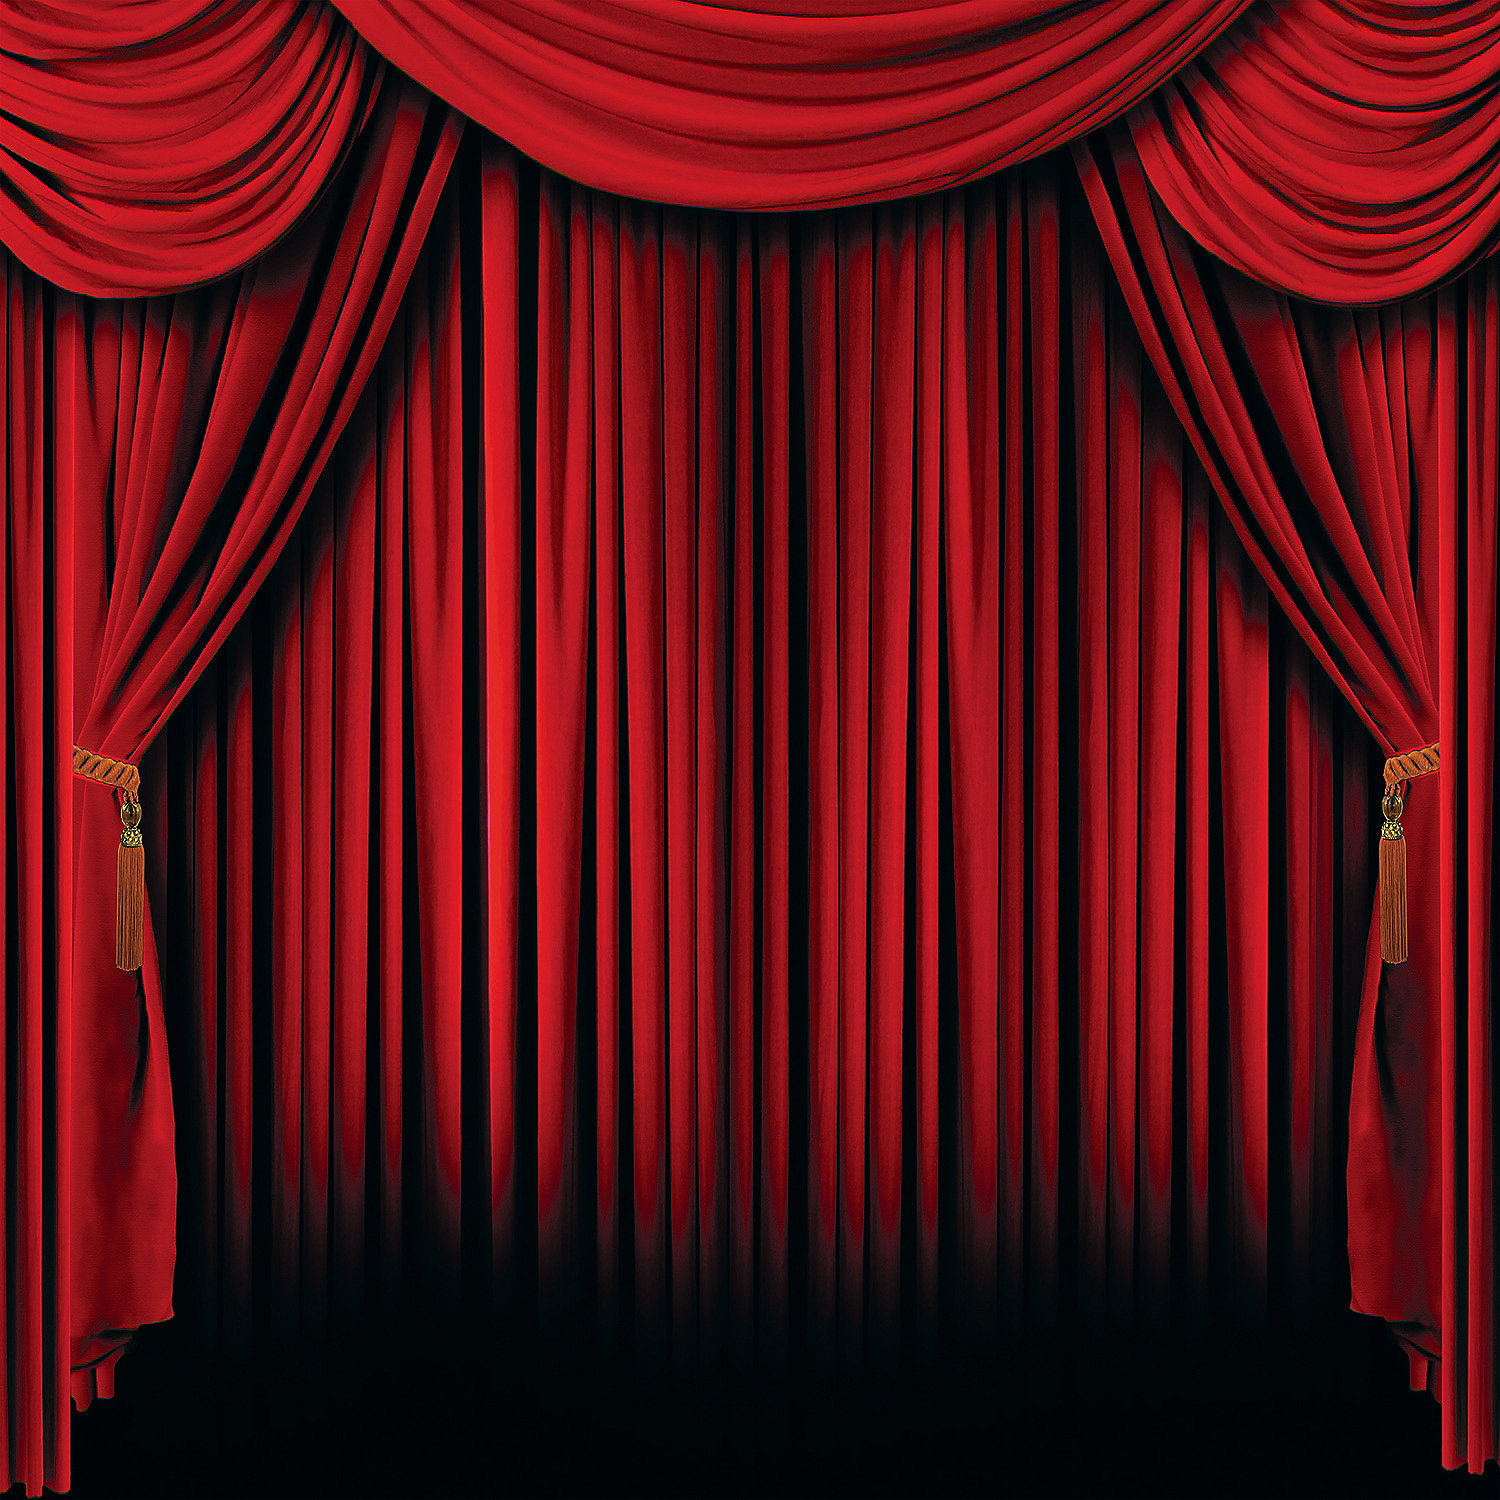 Red Curtain 6 Ft By 6 Ft Backdrop Party Supplies Canada